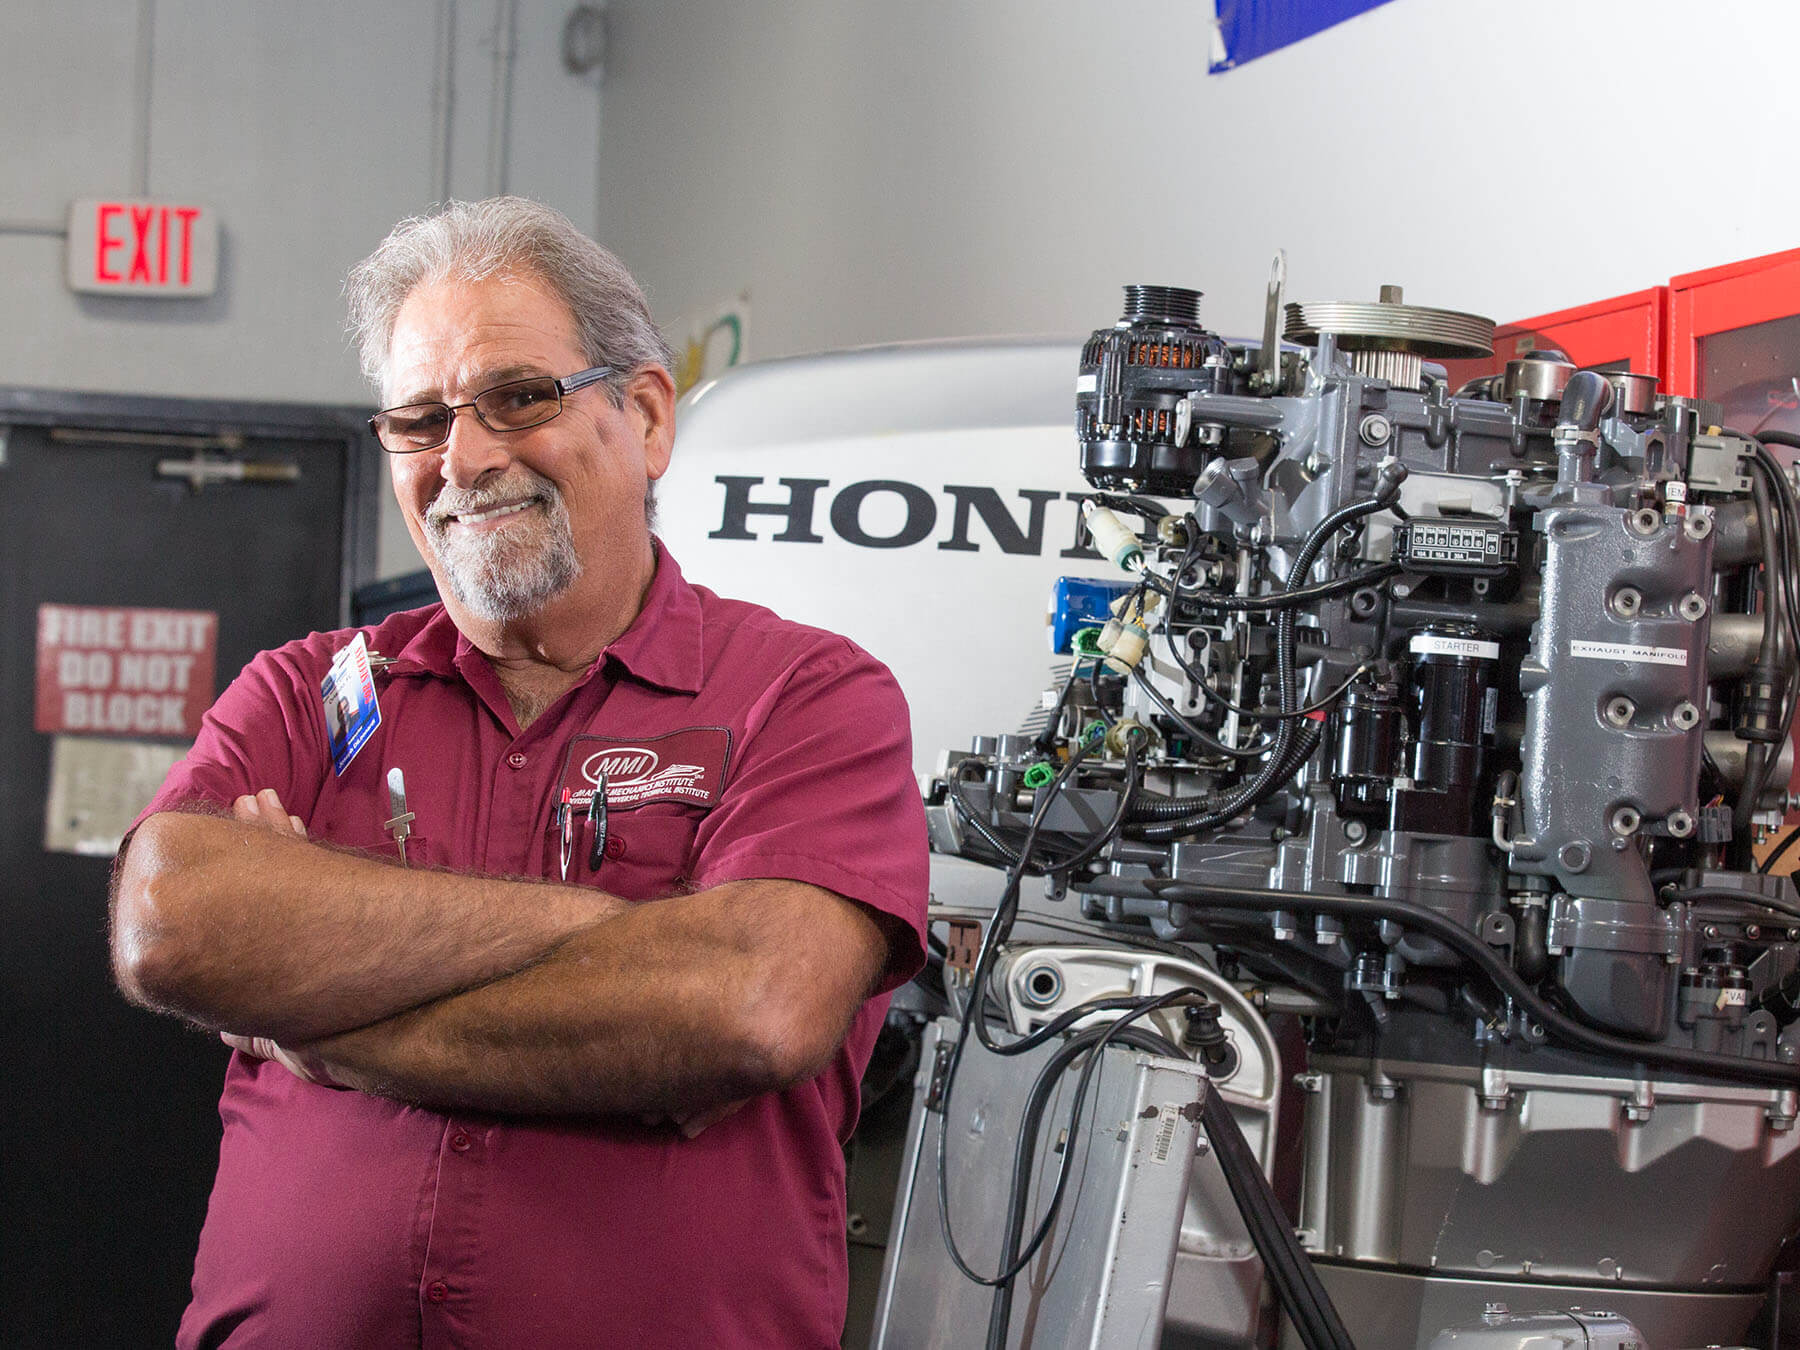 MMI instructor smiling next to a Honda marine engine